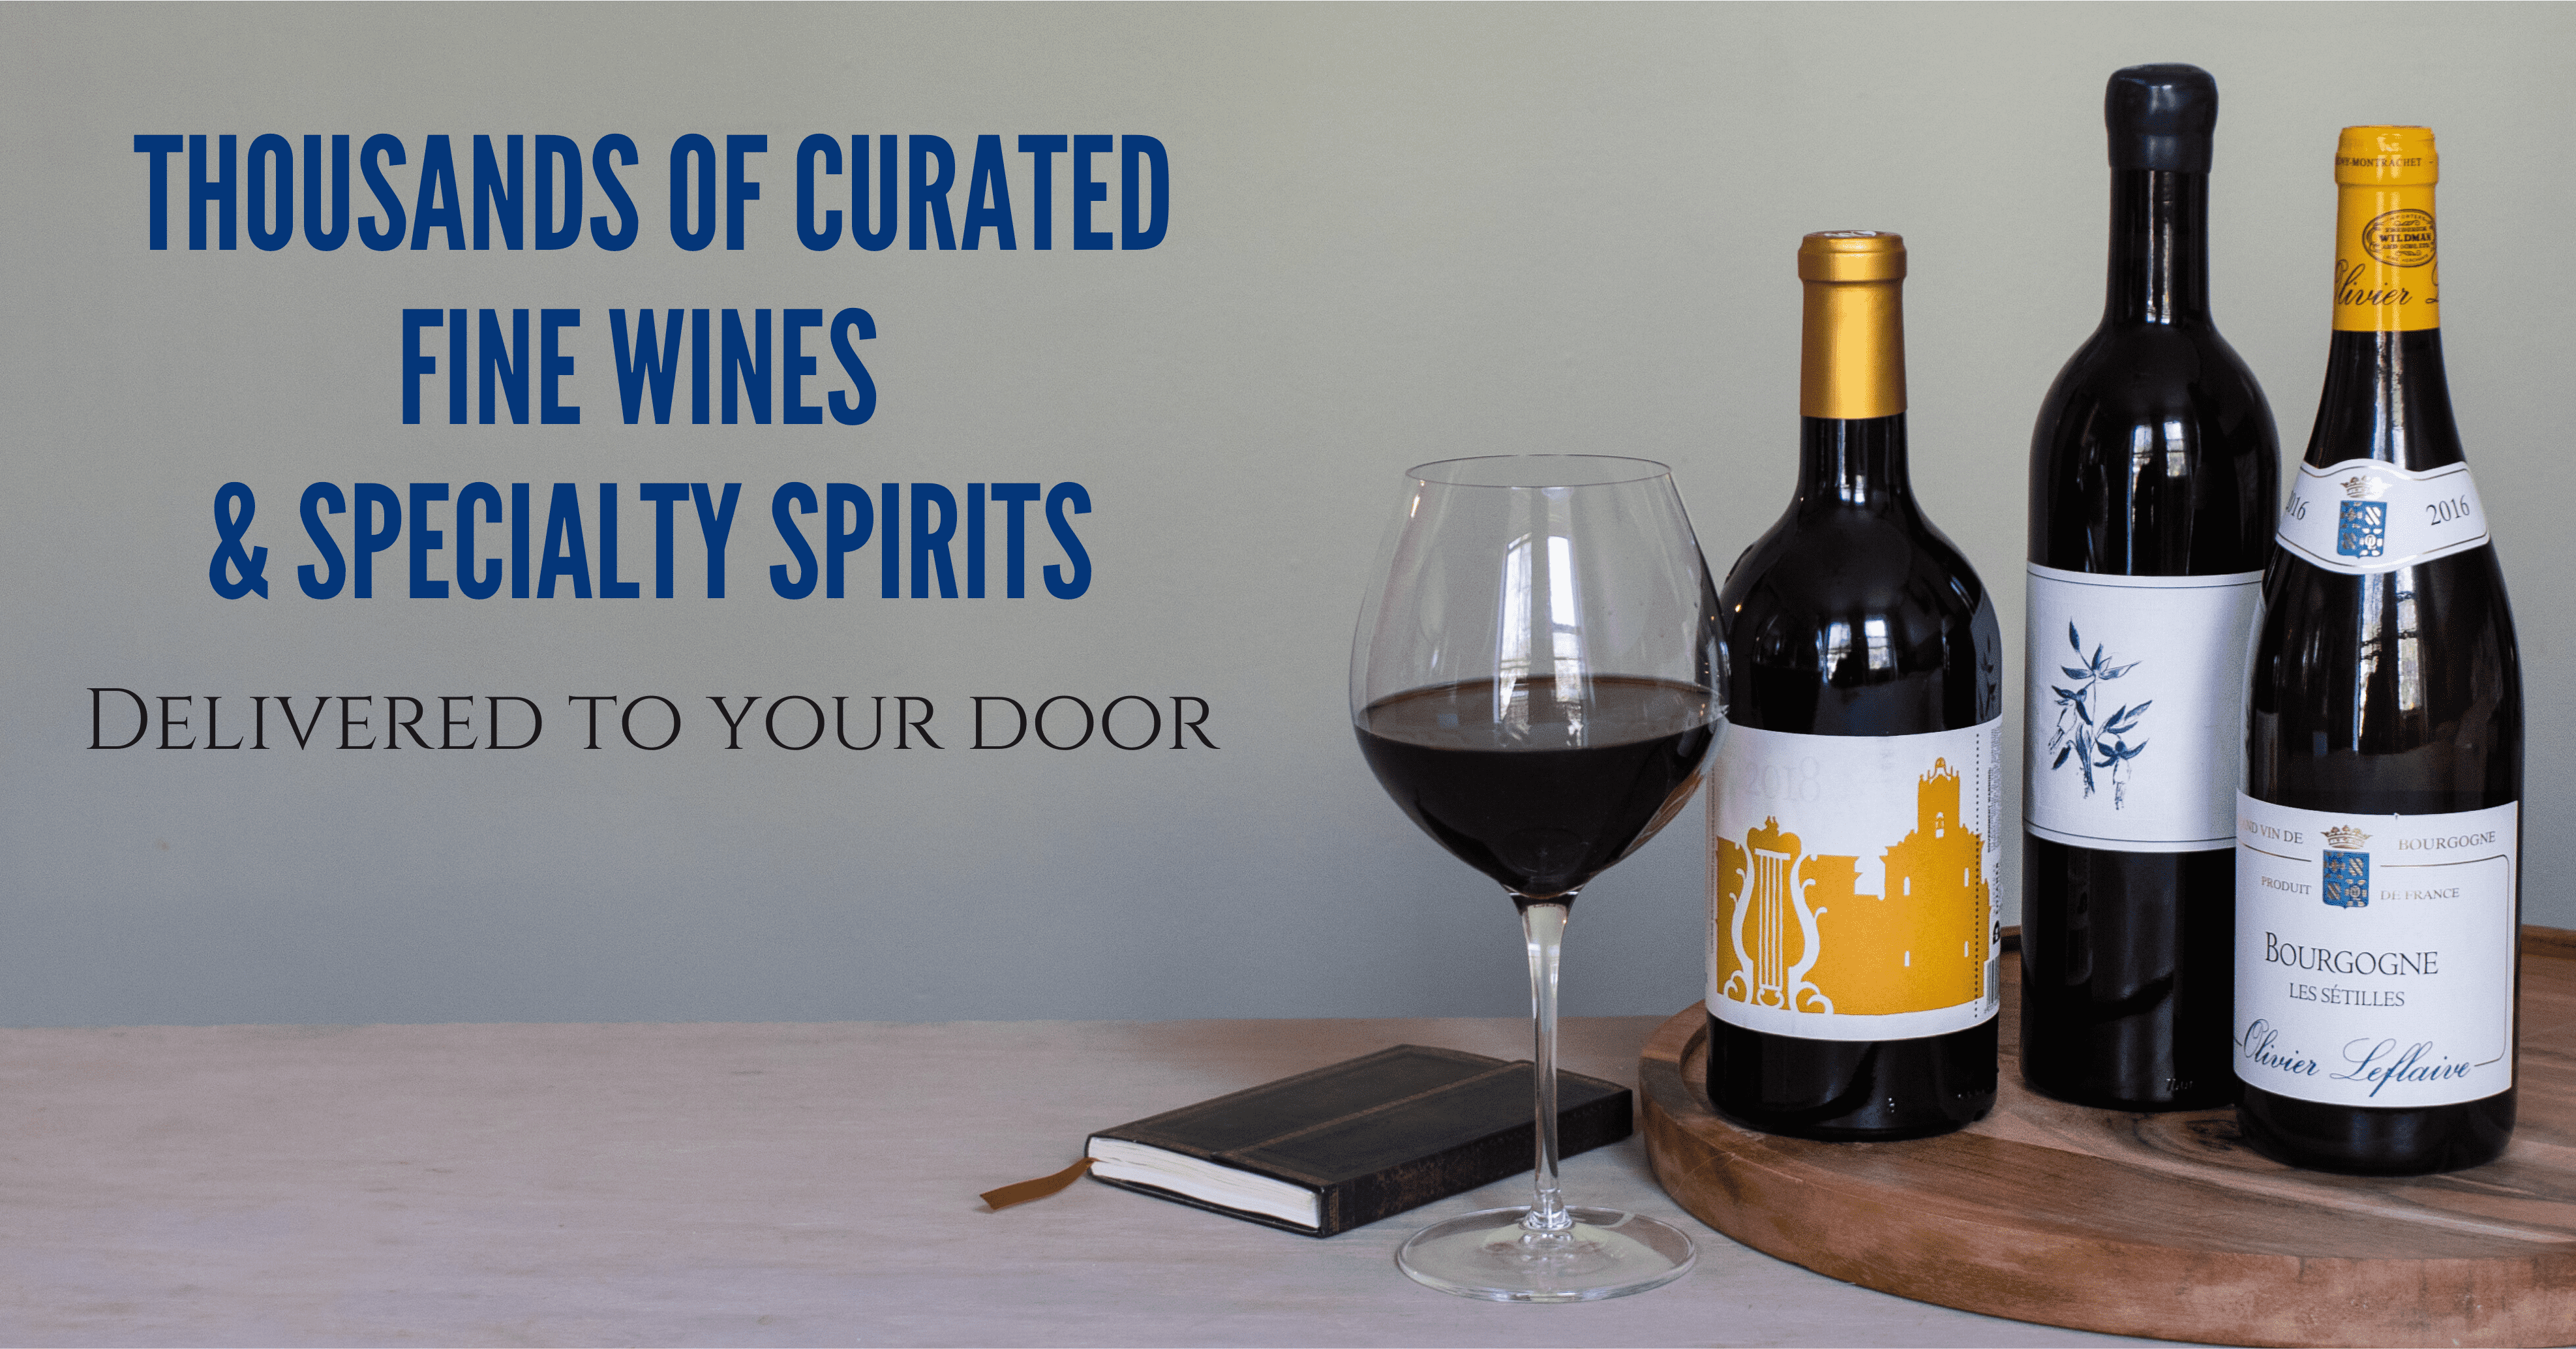 Thousand of Curated Fine Wines & Specialty Spirits for delivery to your door